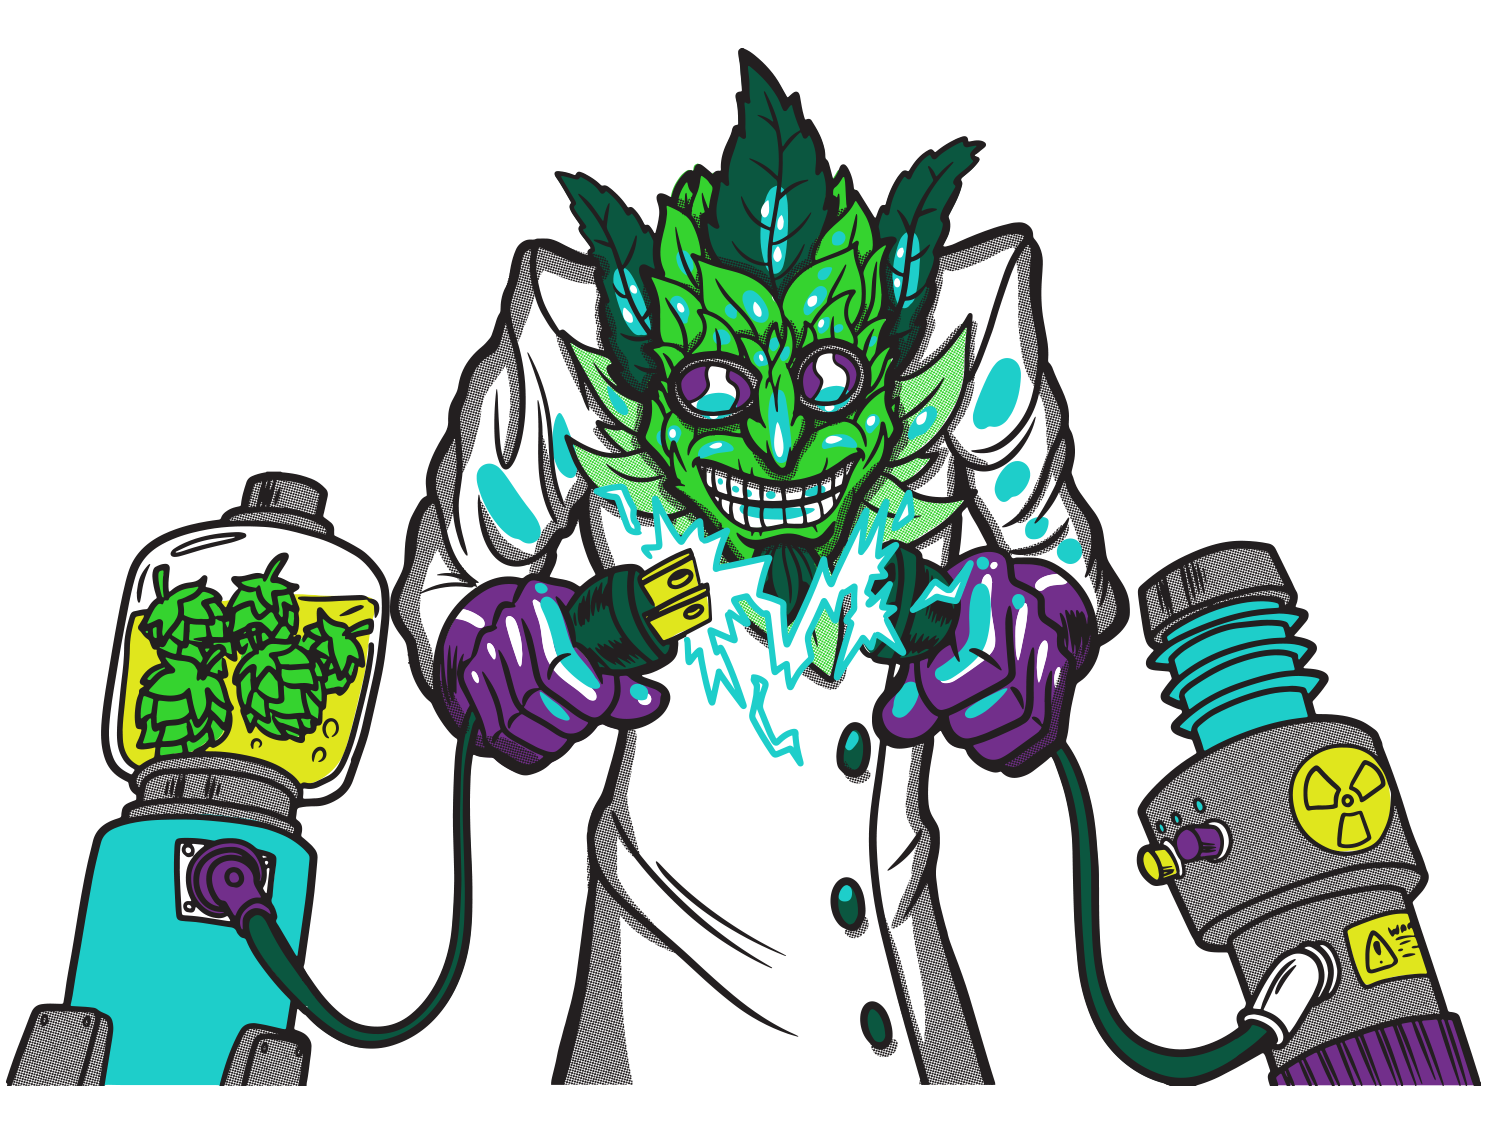 Dr Dank Beer Cartoon with Mad Scientist for 420